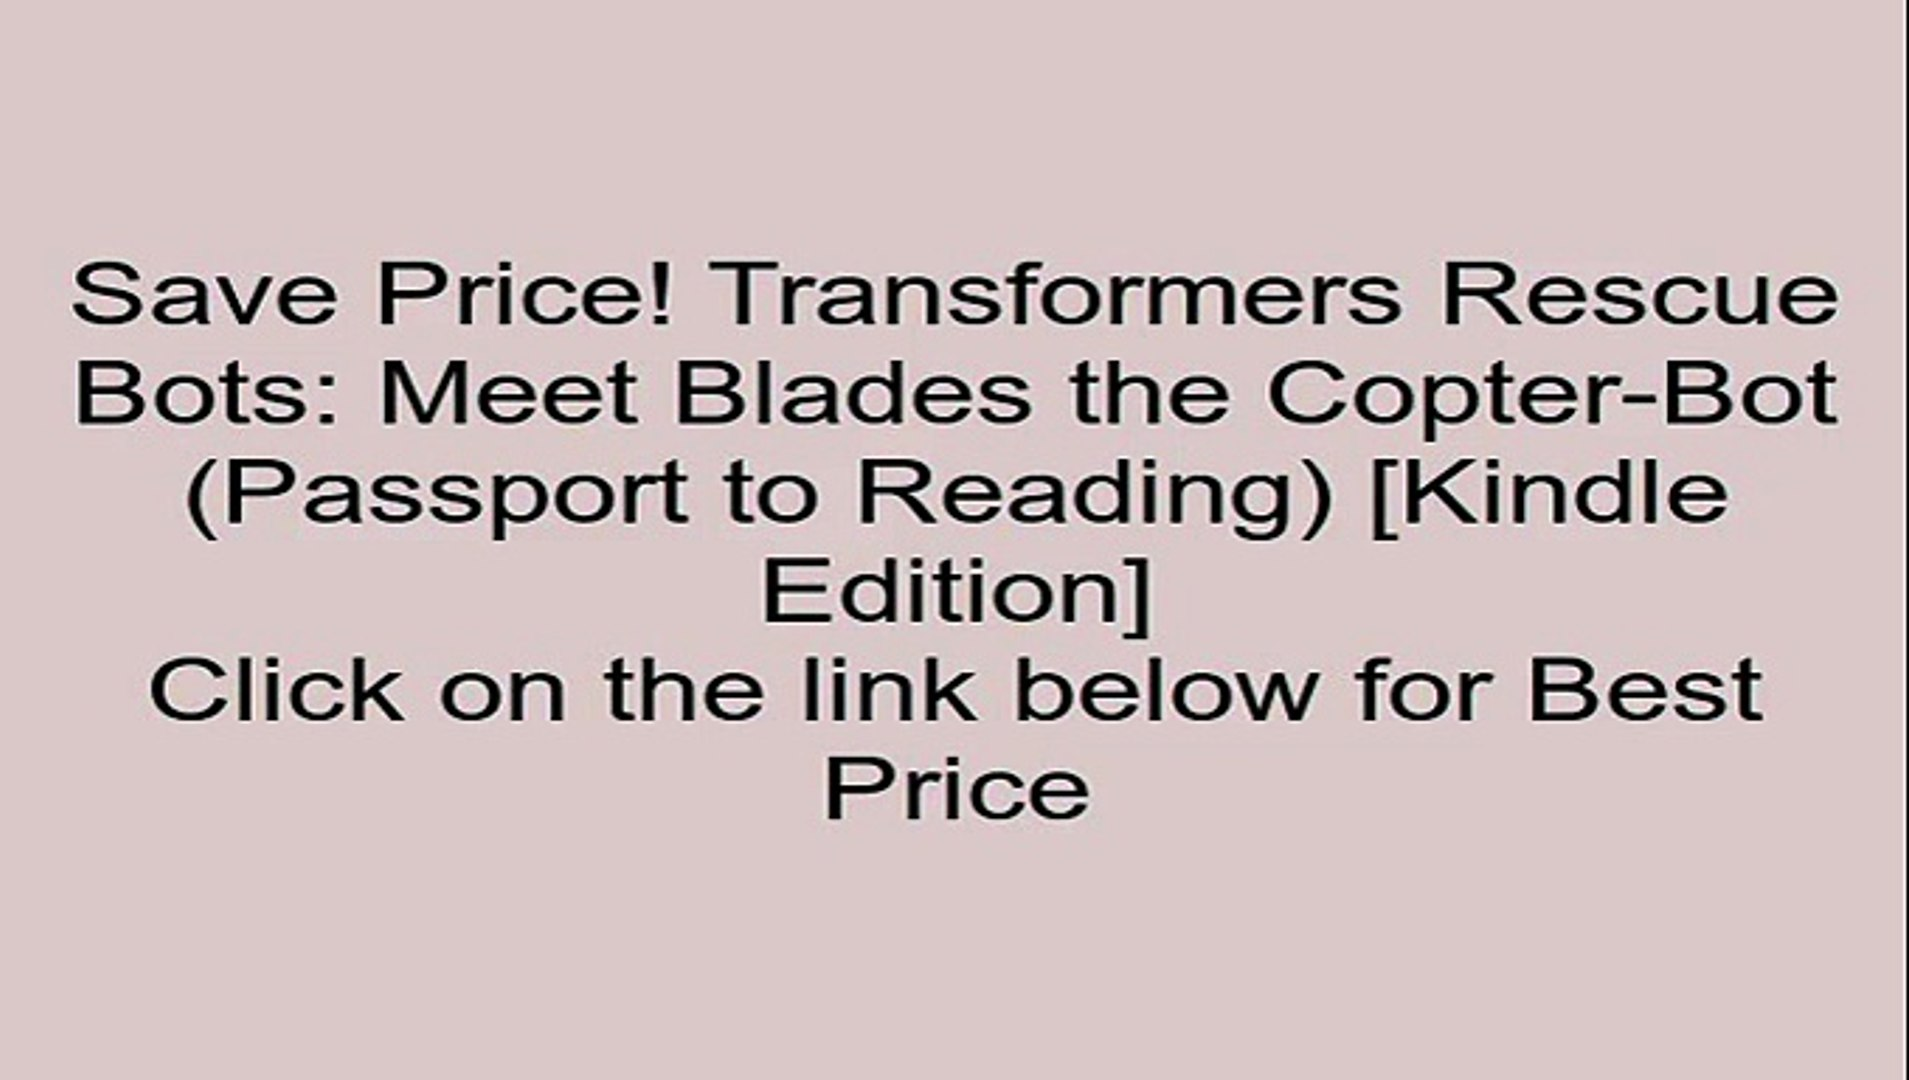 Download Transformers Rescue Bots: Meet Blades the Copter-Bot (Passport to Reading) [Kindle Edition]